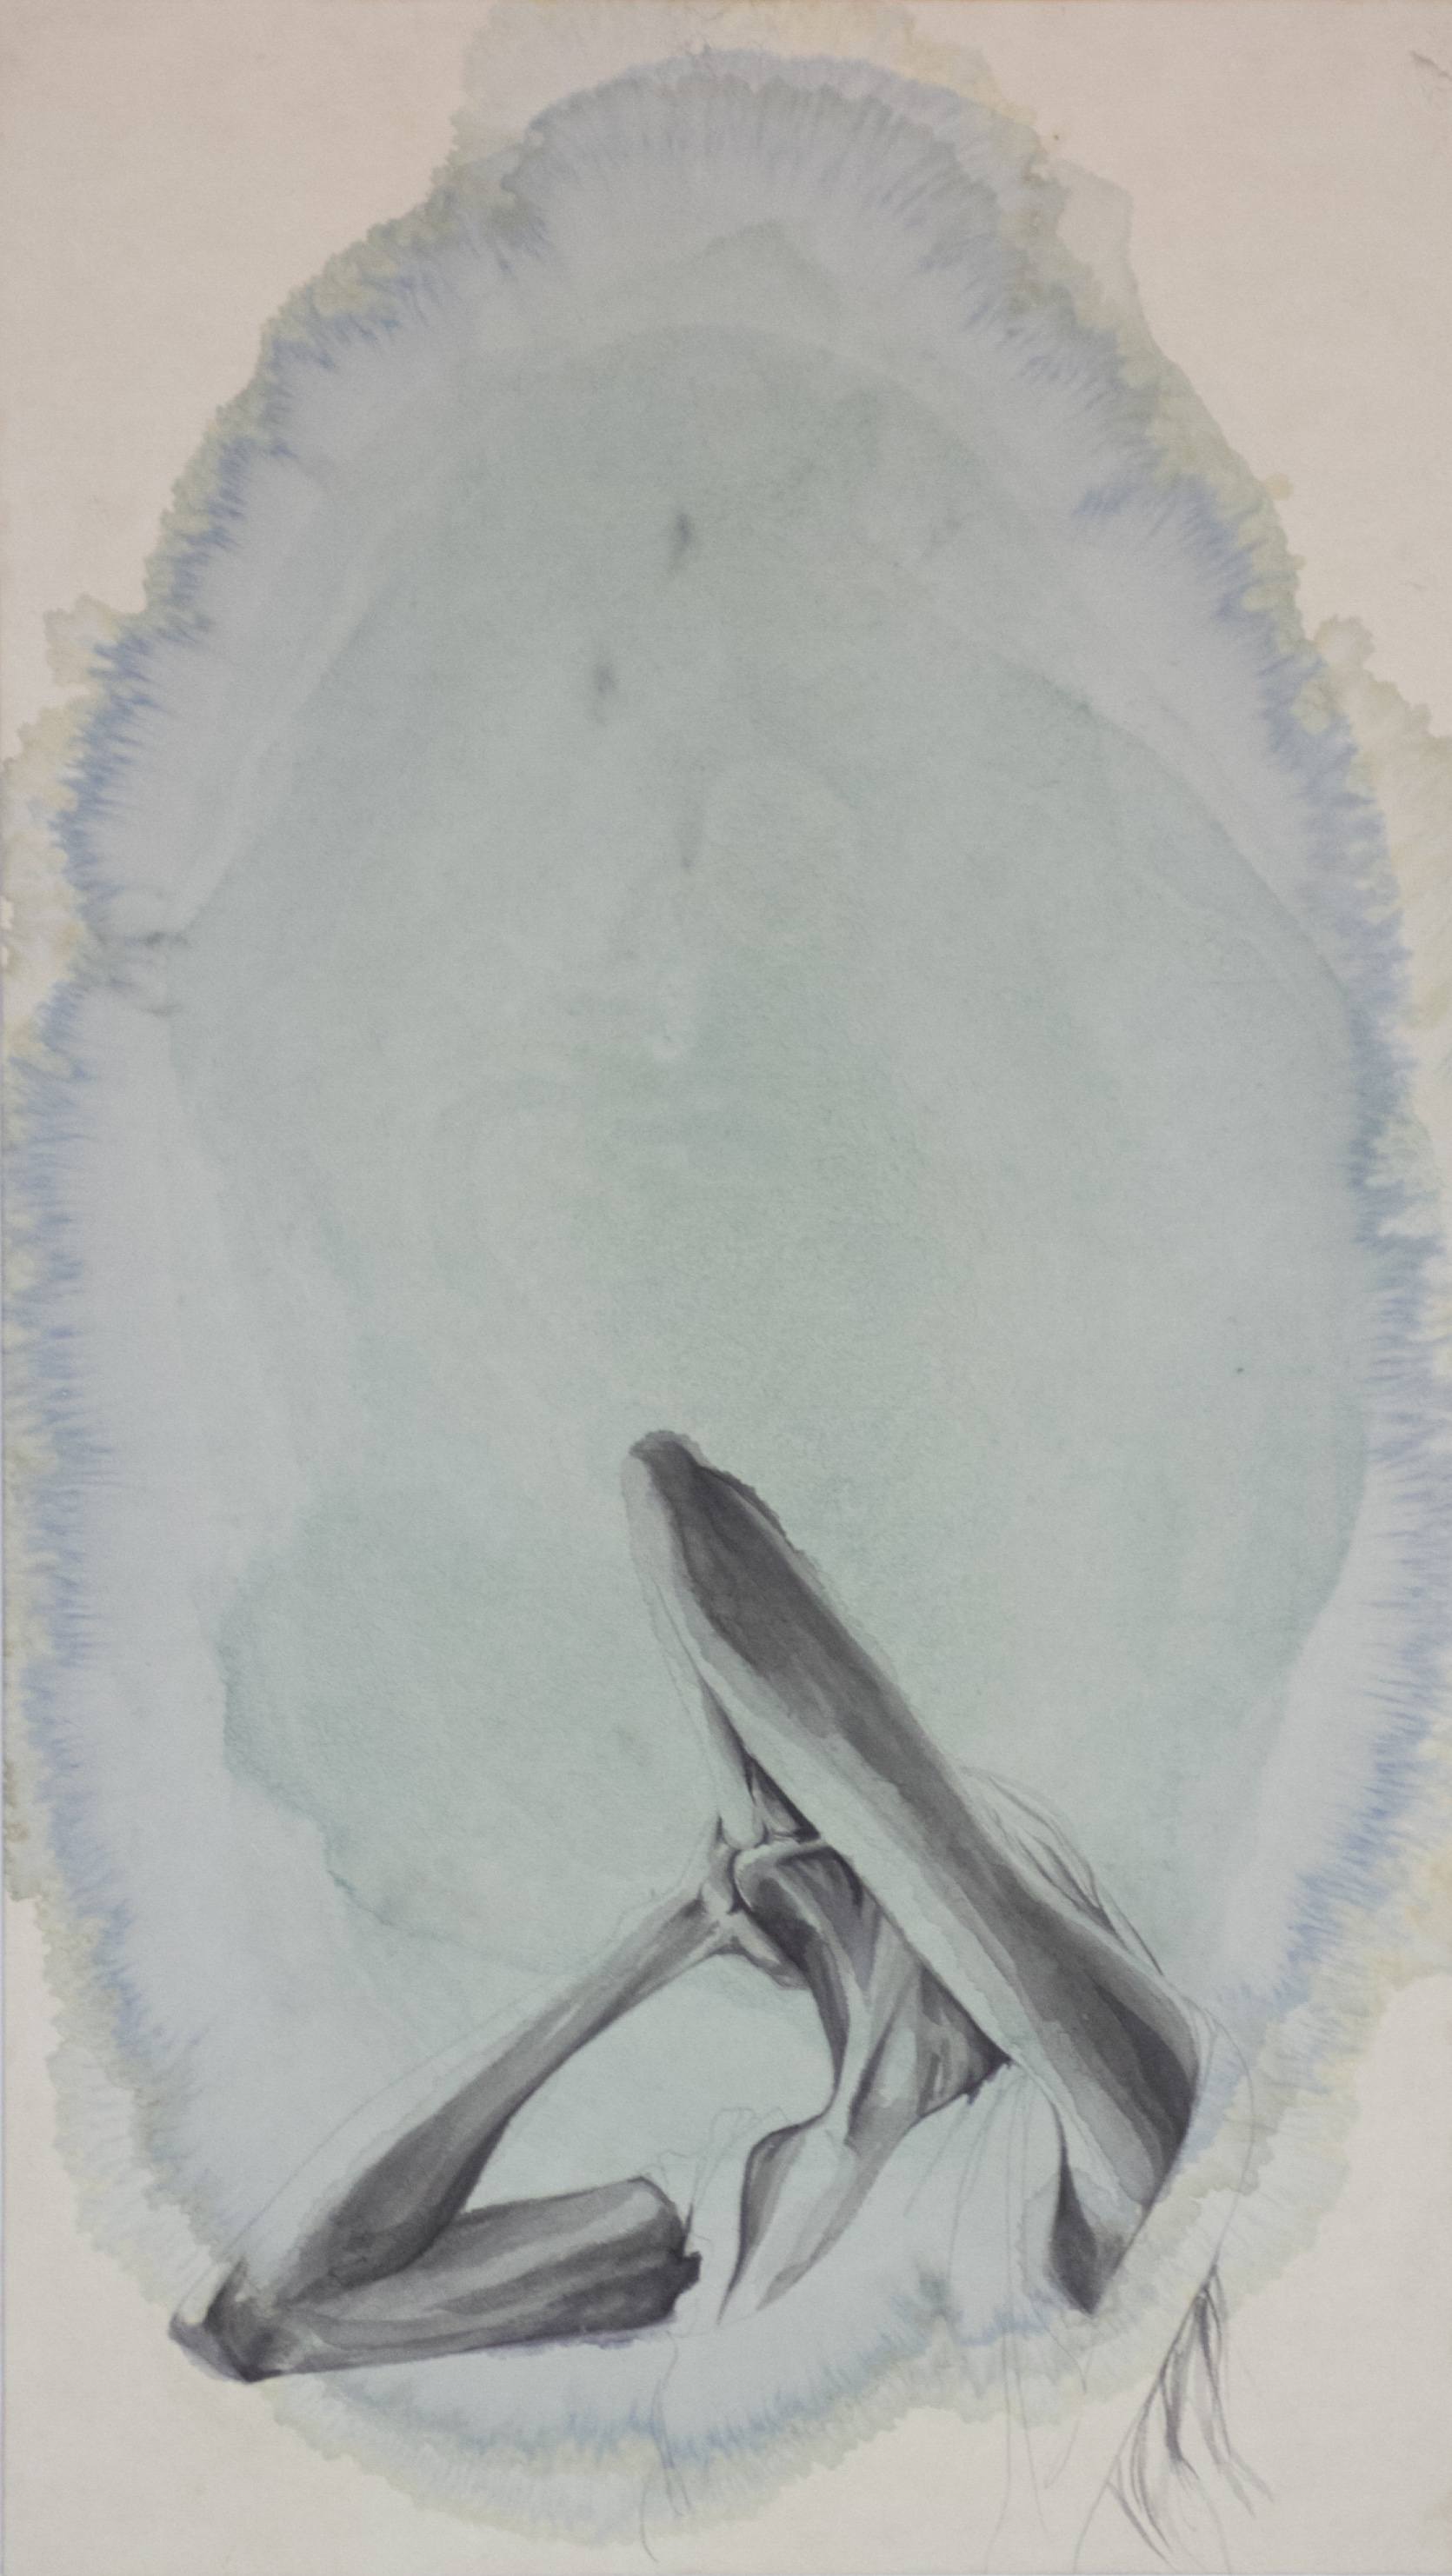 1/3 from Deep Waters Series. 28x16in. Gouache and ink on Mulberry paper. By Laura Short and Joanna Ahlman. $200.00